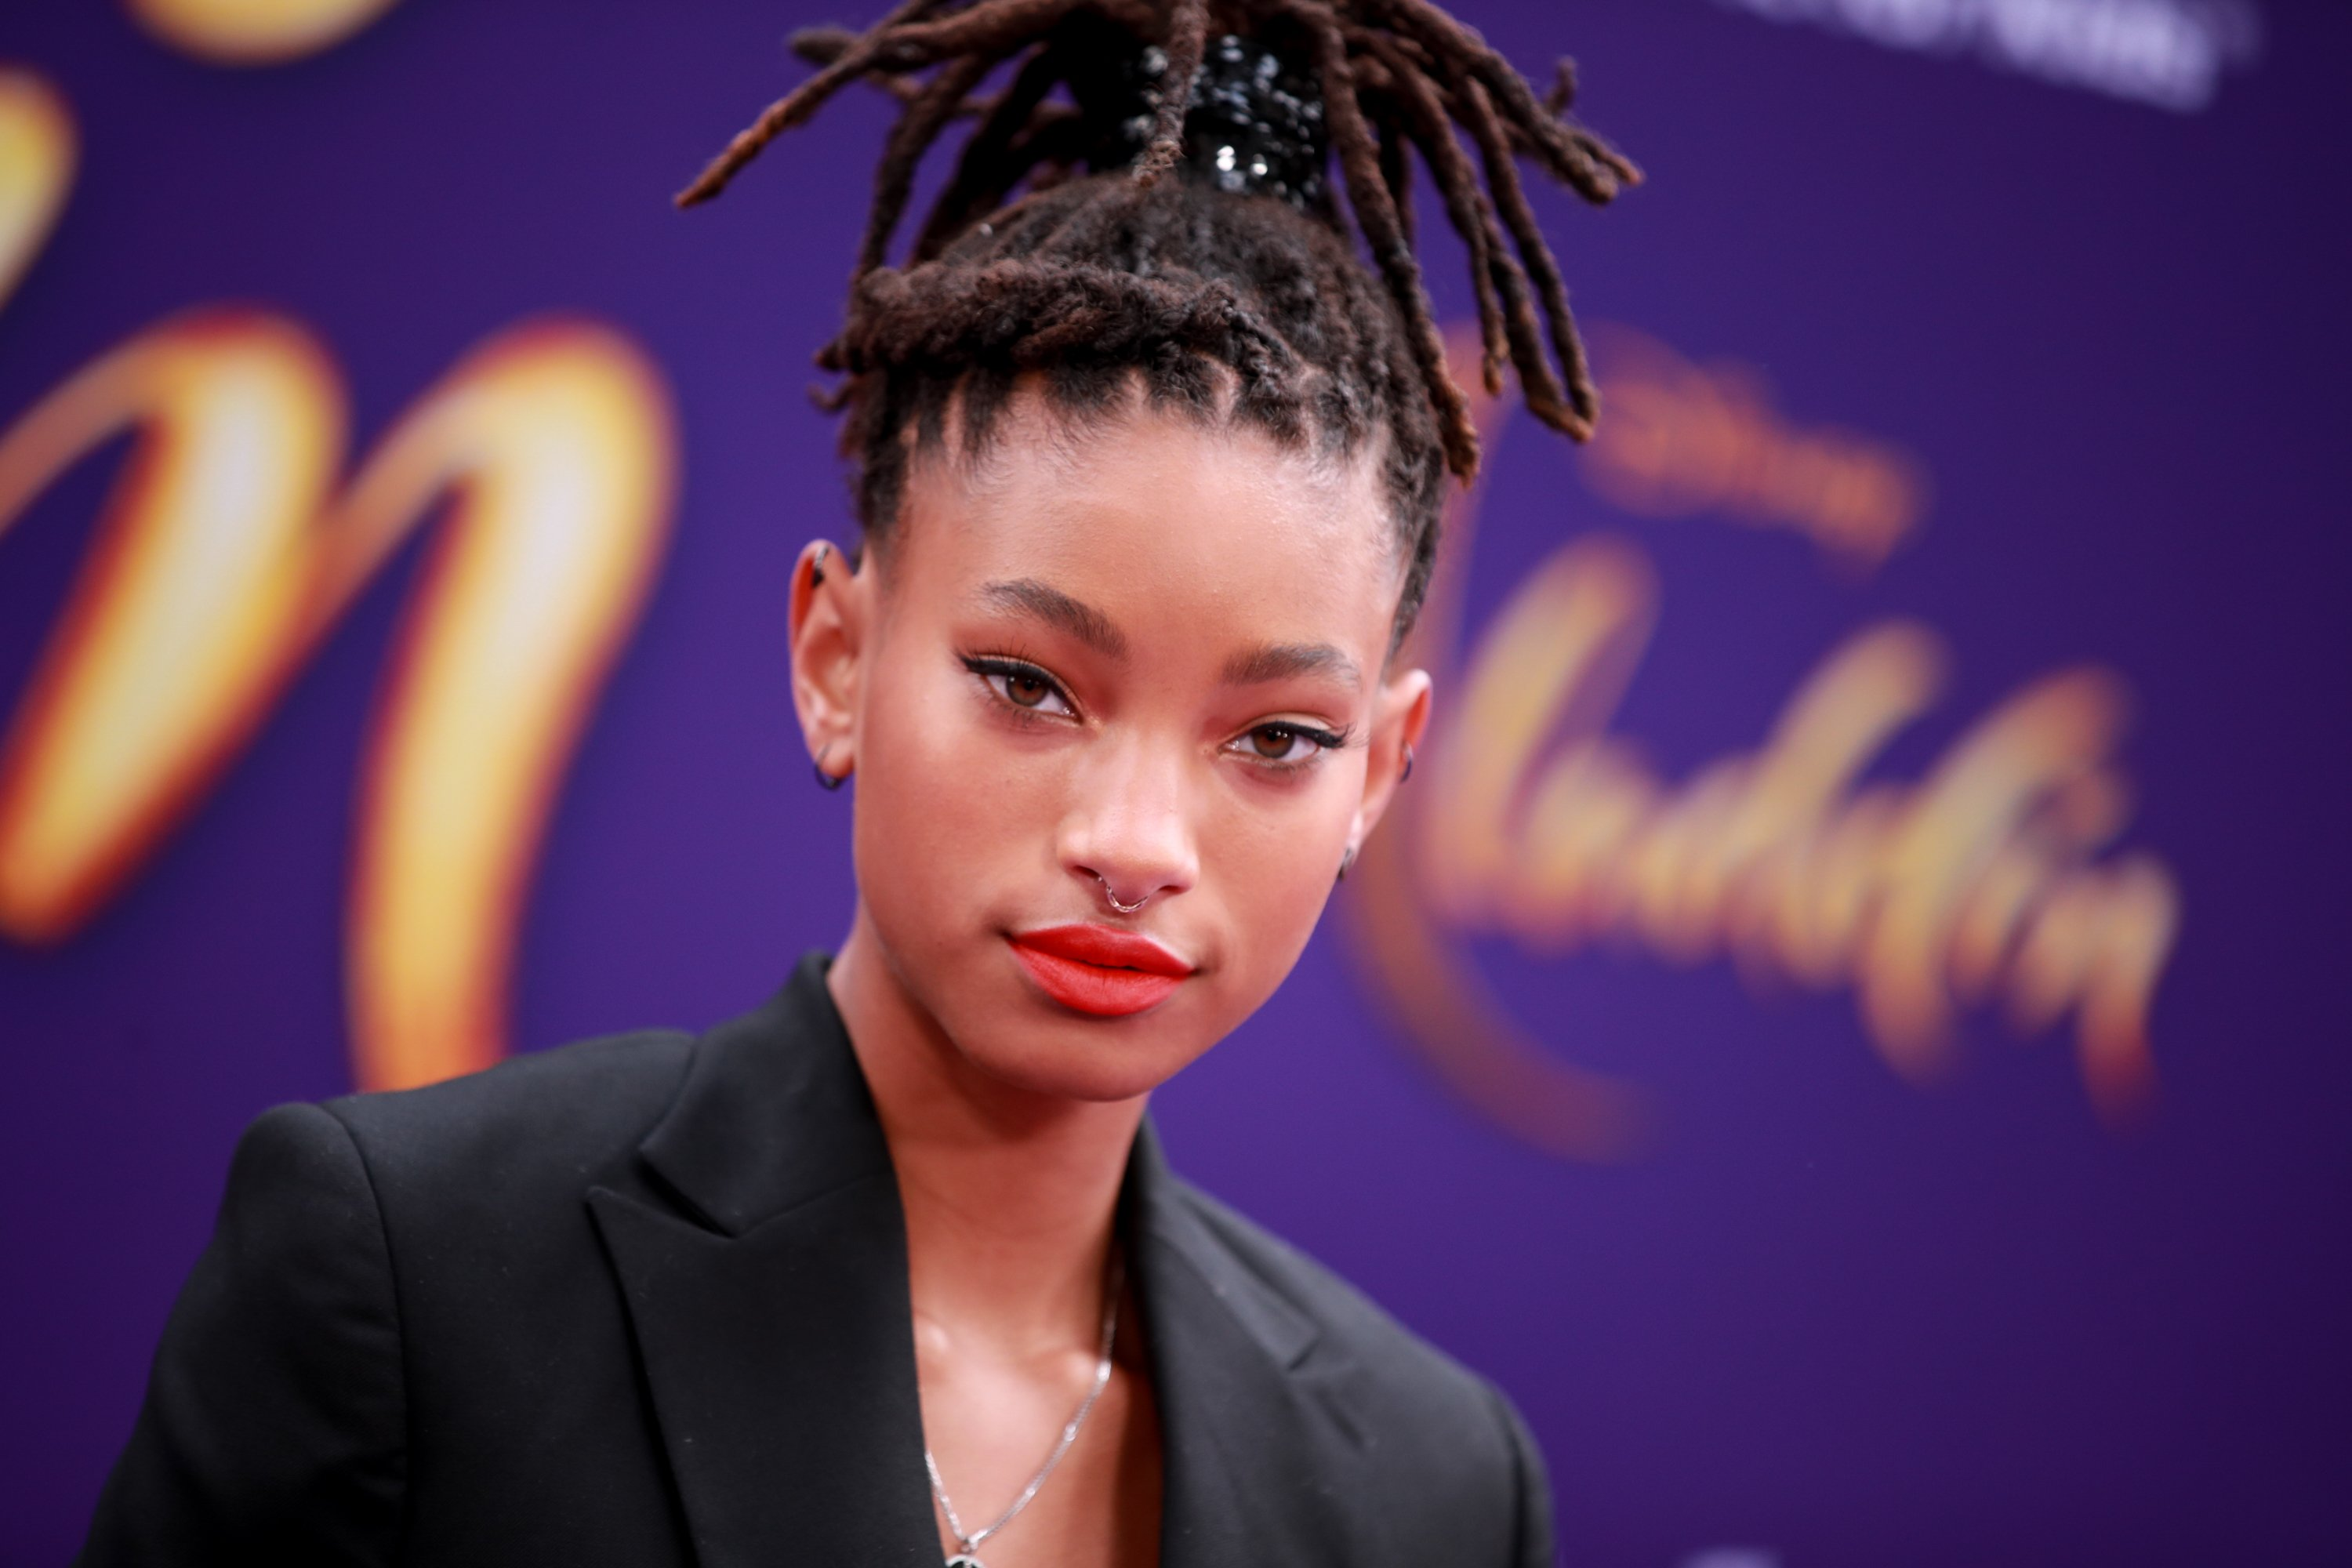 """Willow Smith attends the premiere of Disney's """"Aladdin"""" on May 21, 2019 in Los Angeles, California. 